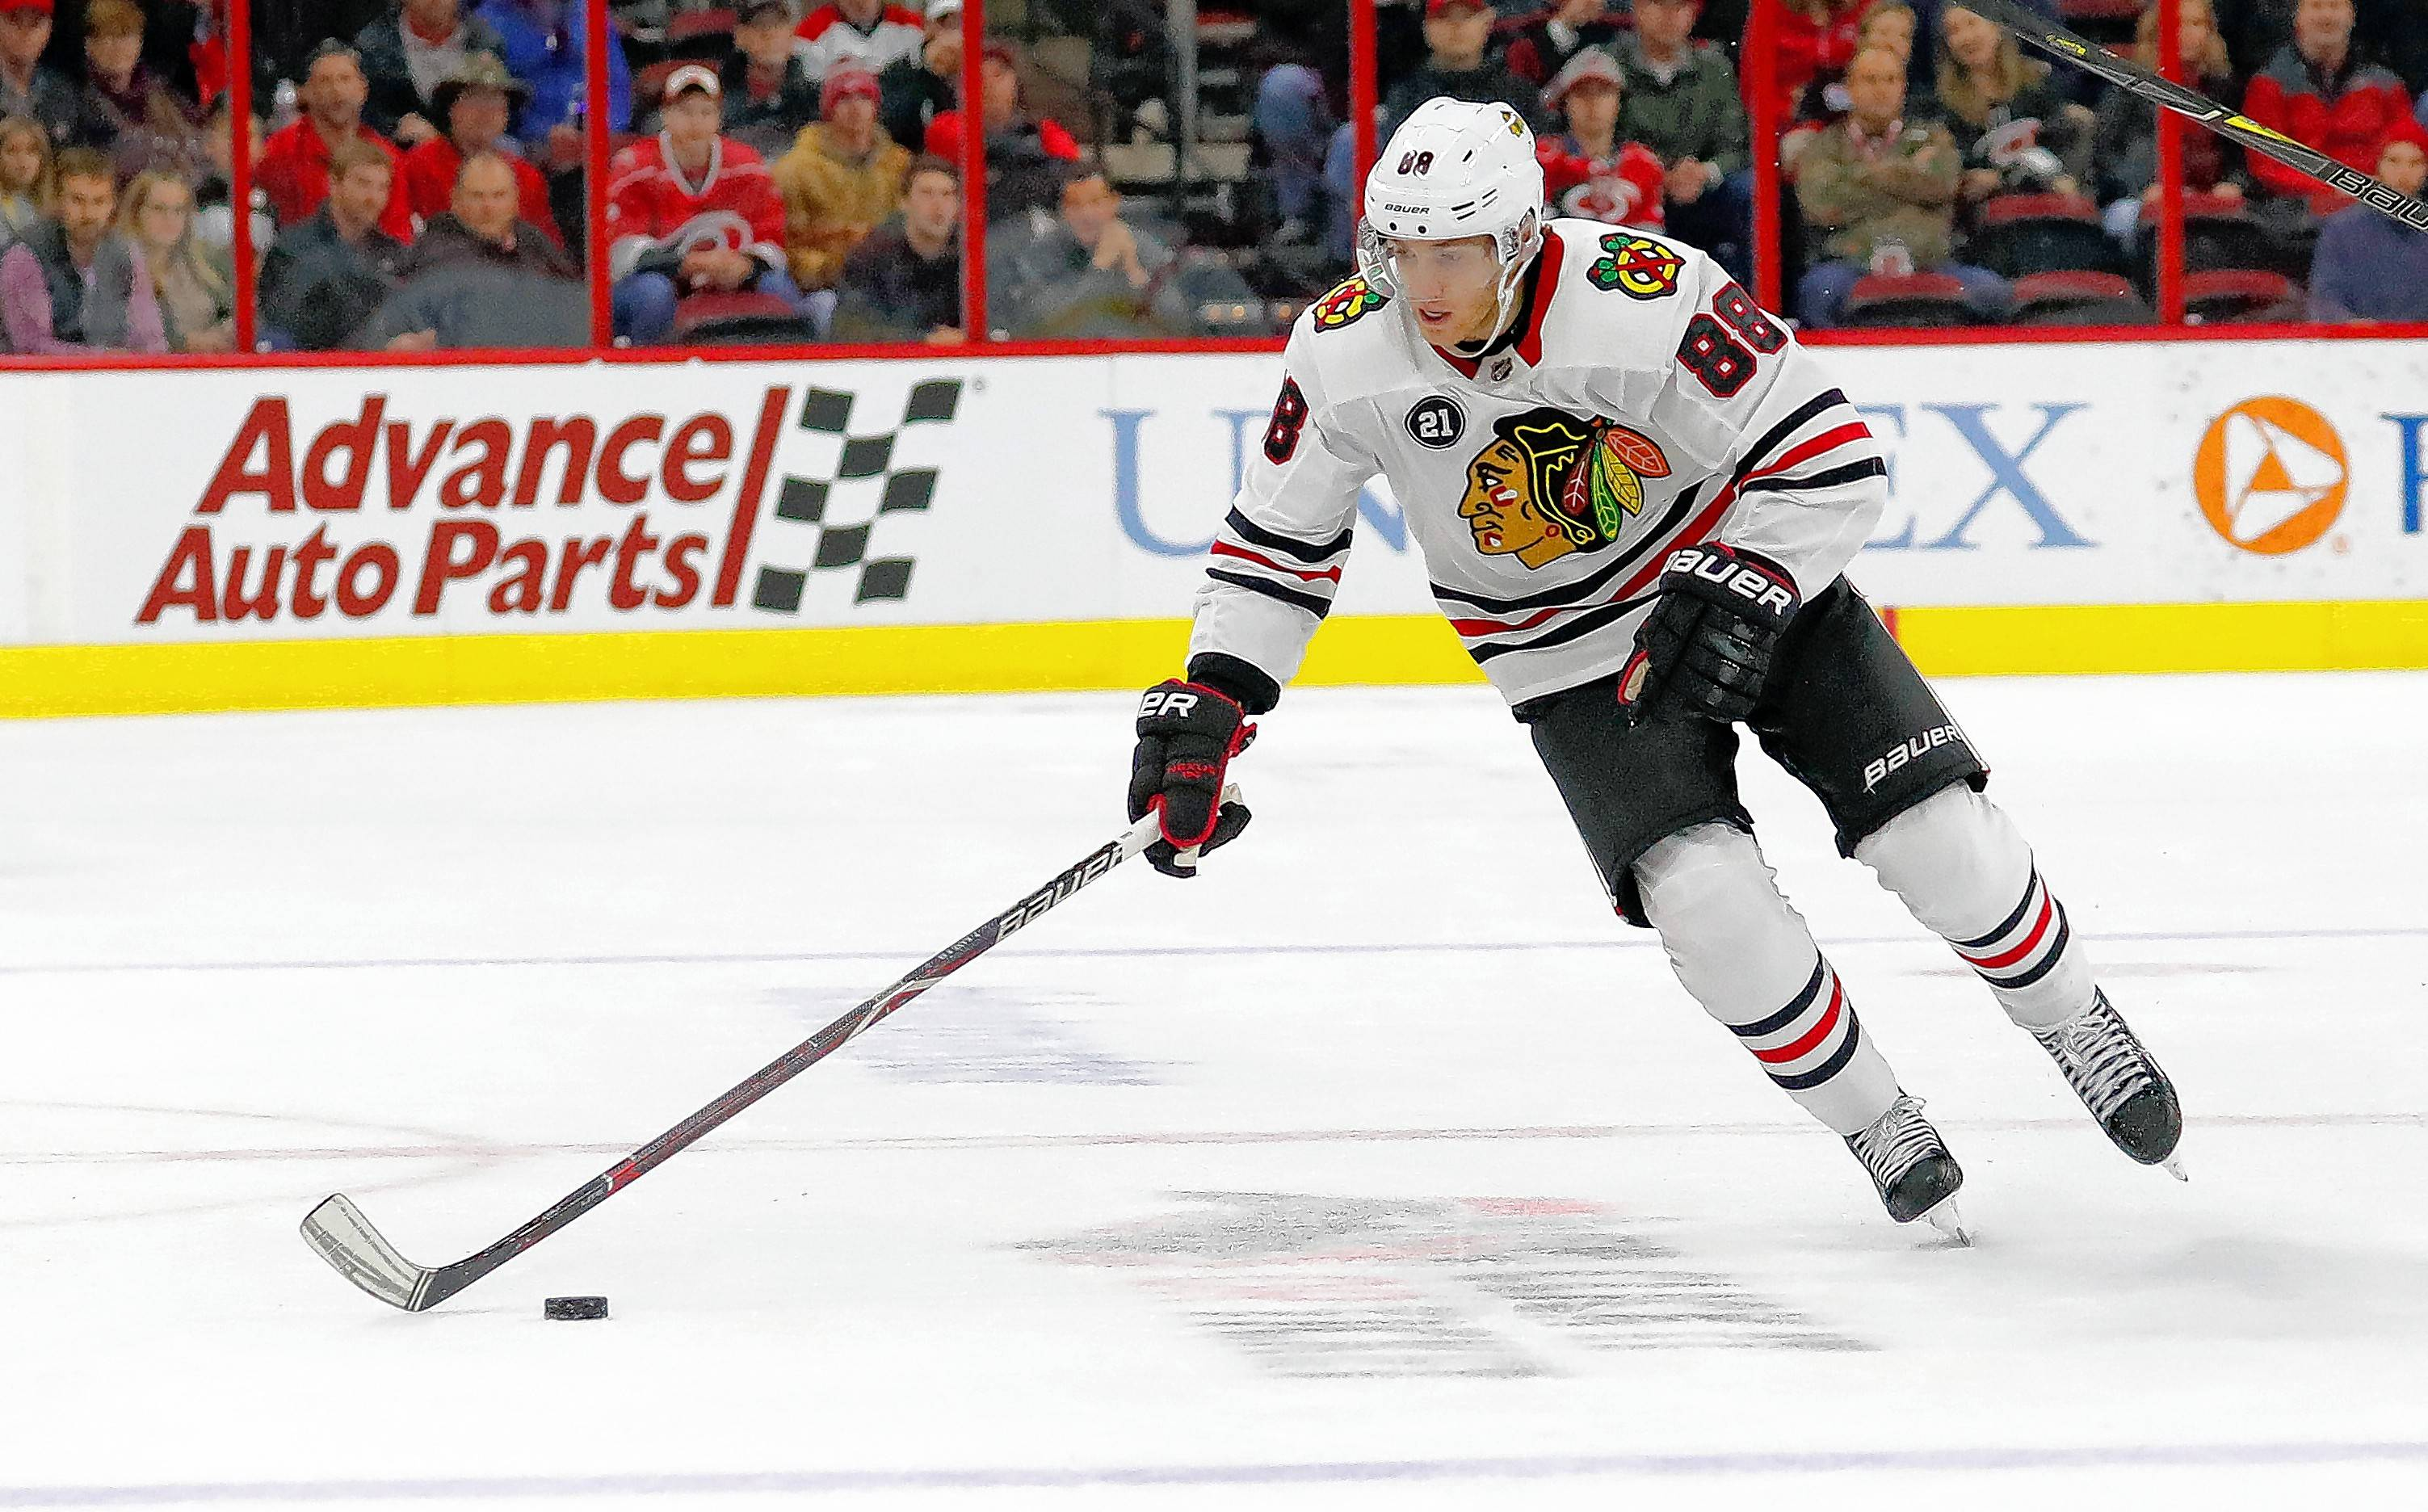 Chicago Blackhawks' Patrick Kane has always had a special bond with Artemi Panarin. Will Kane try and talk Panarin into signing with Chicago again?